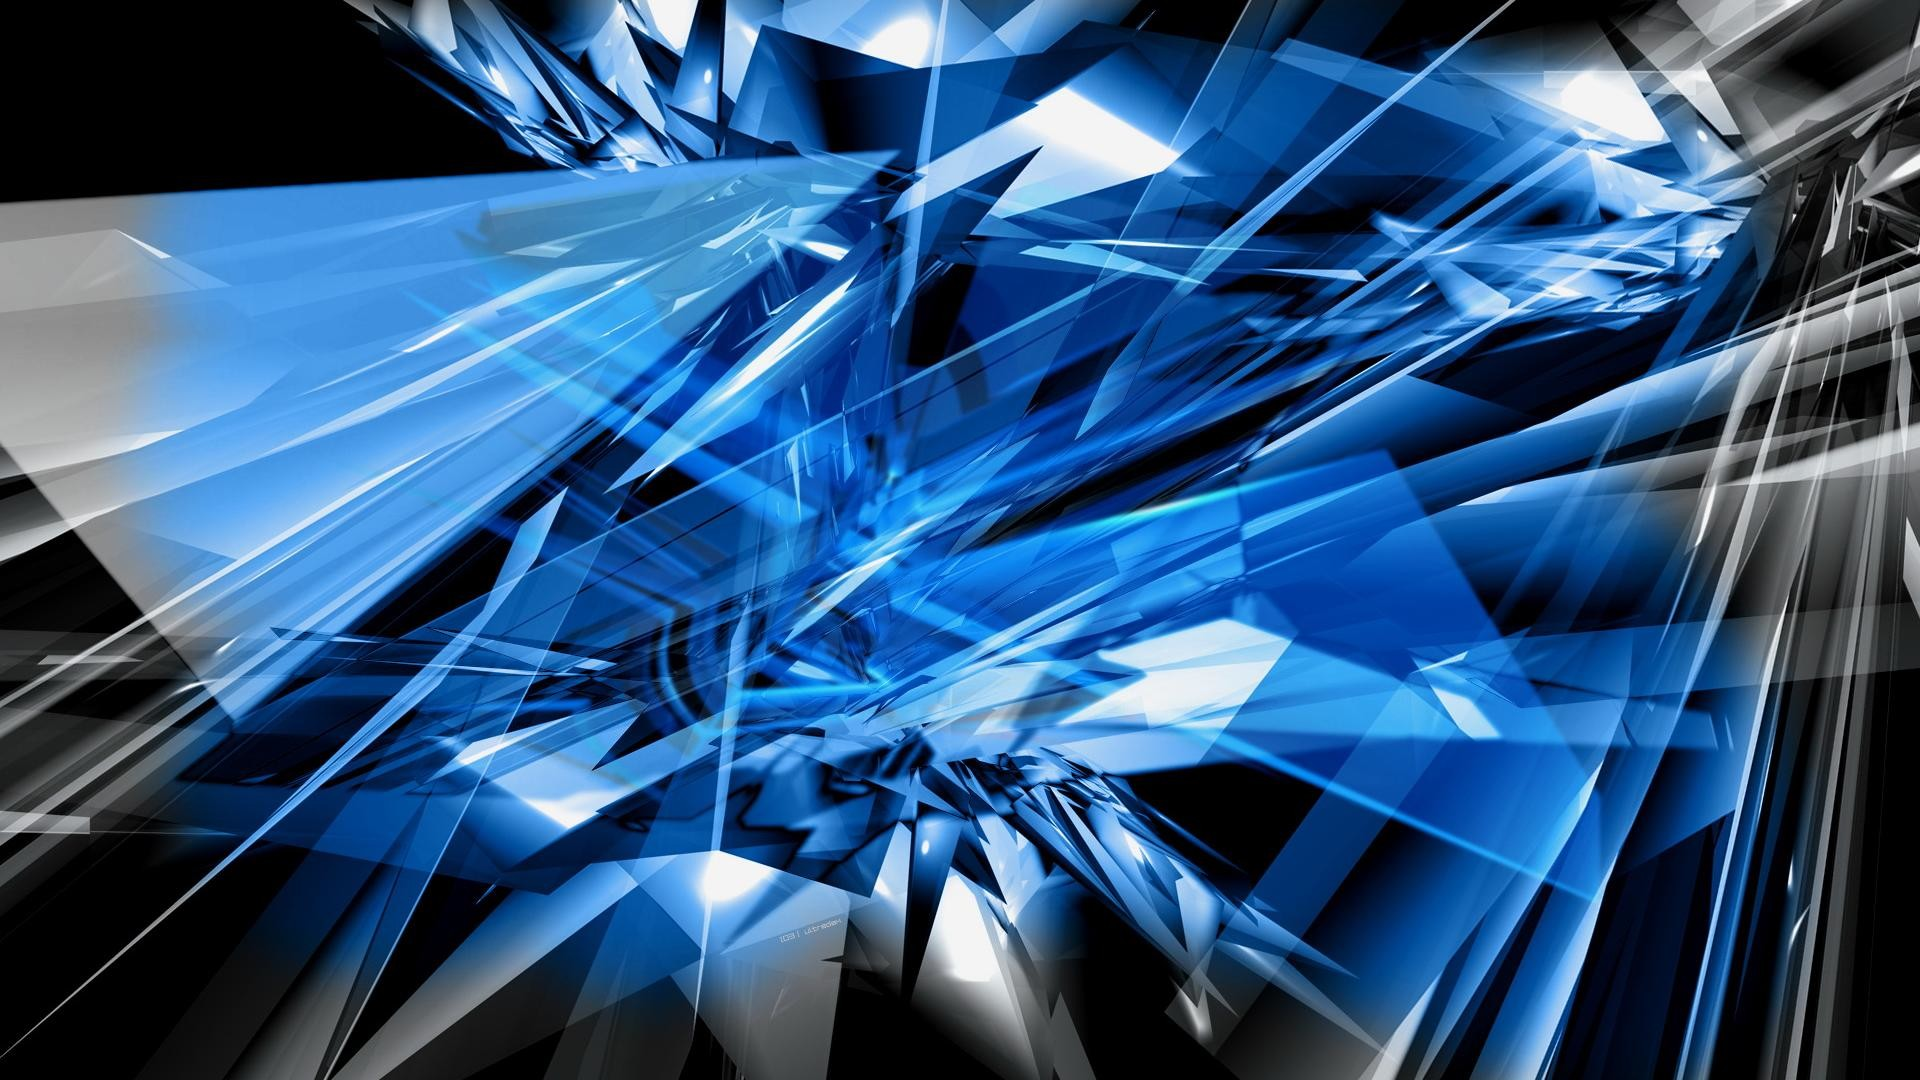 HD 3D Abstract Wallpapers 1920x1080 (64+ Images